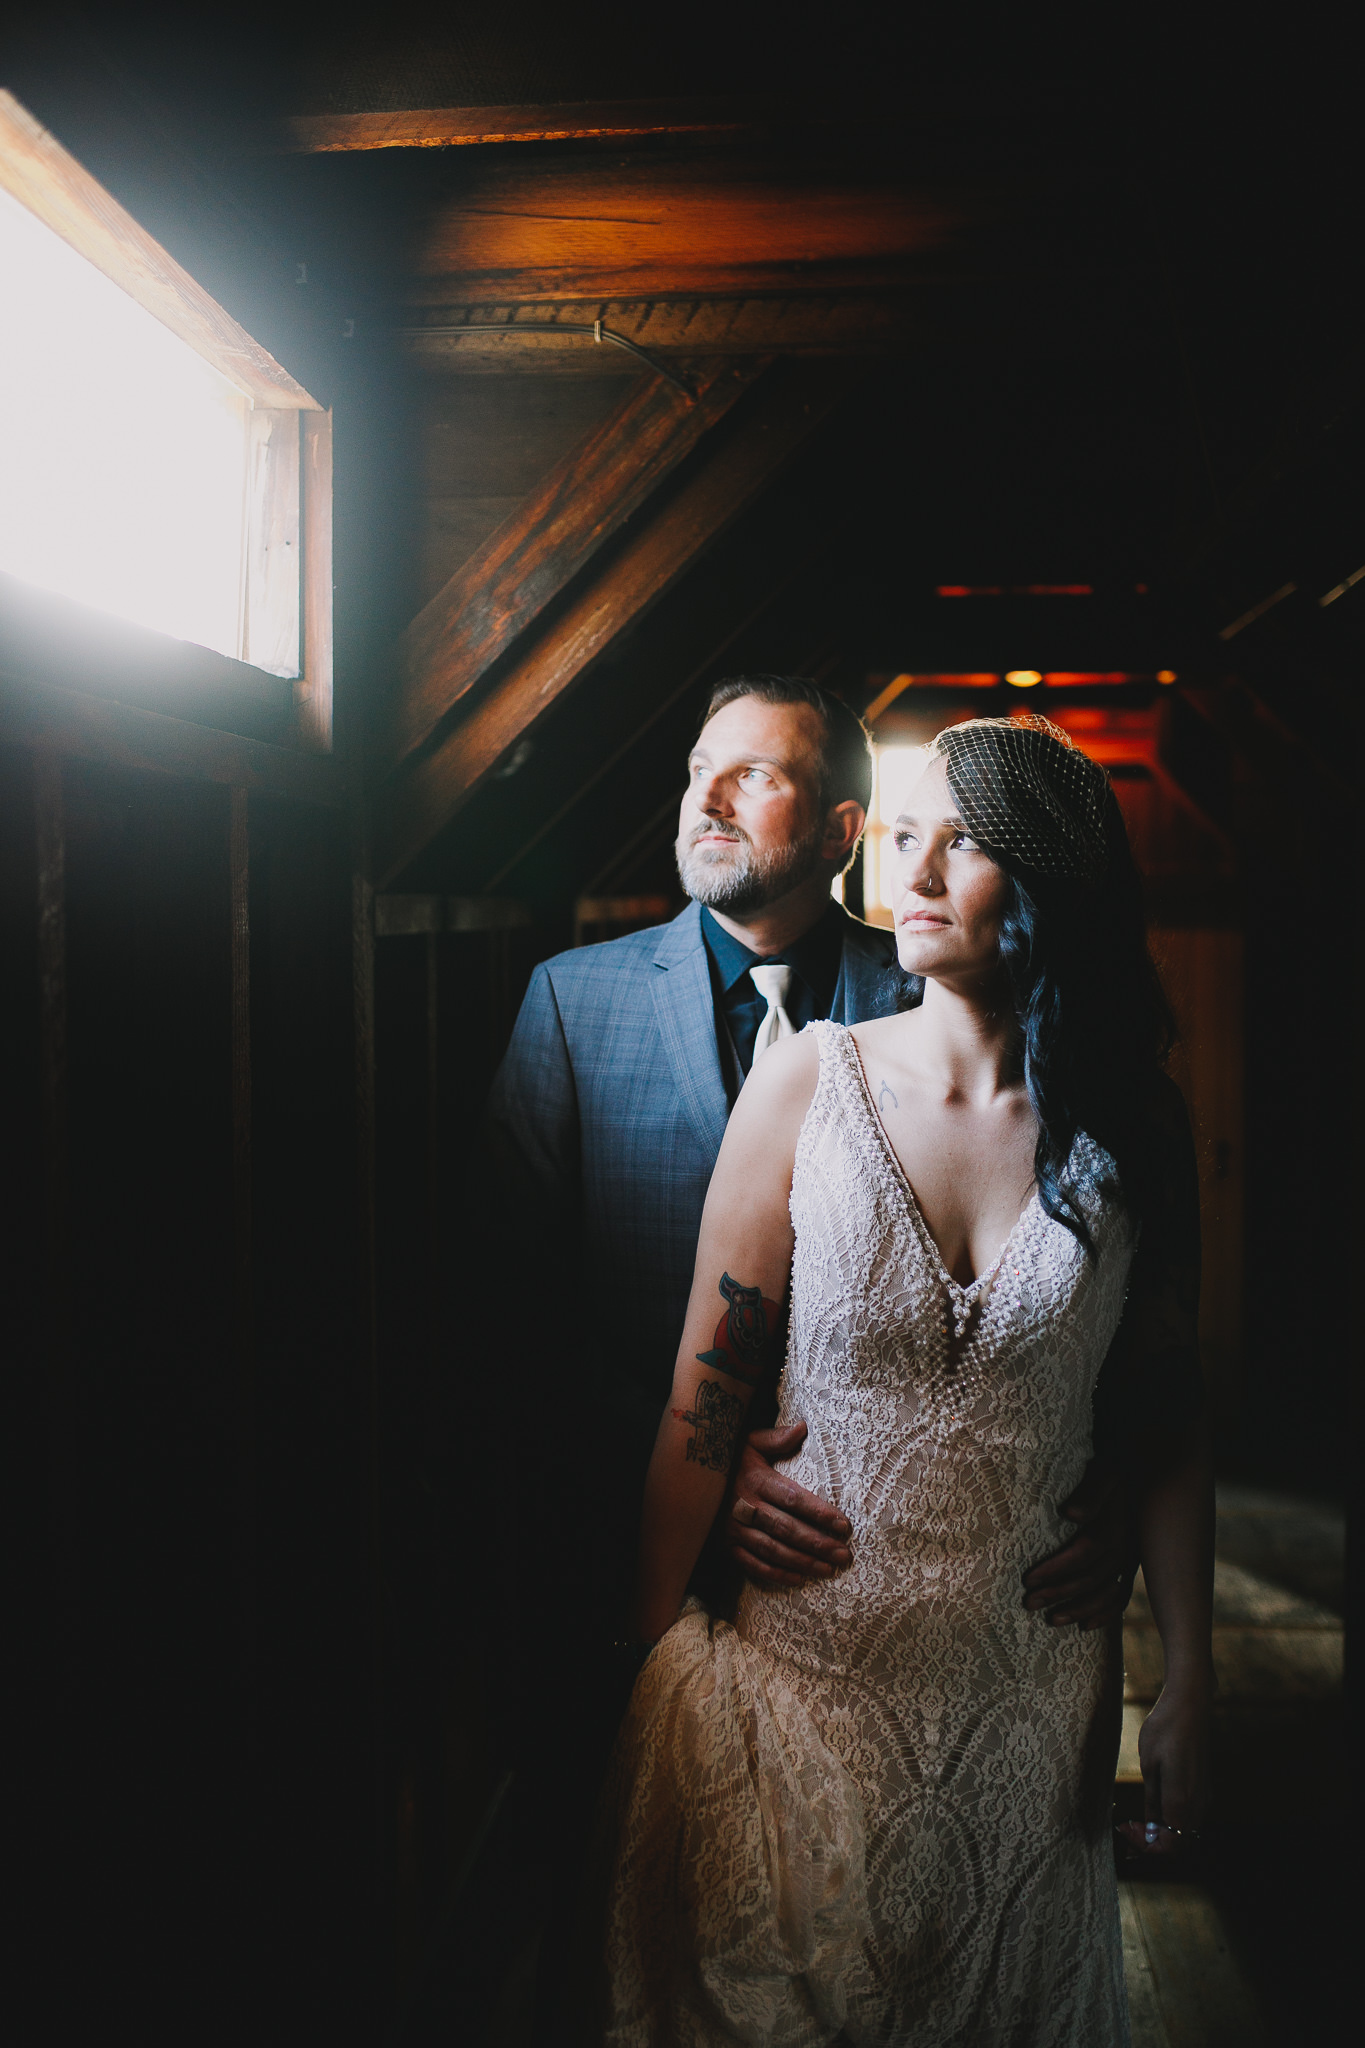 Archer Inspired Photography Sara and Aaron Winchester Mystery House NorCal San Jose California Wedding Photographer-315.jpg